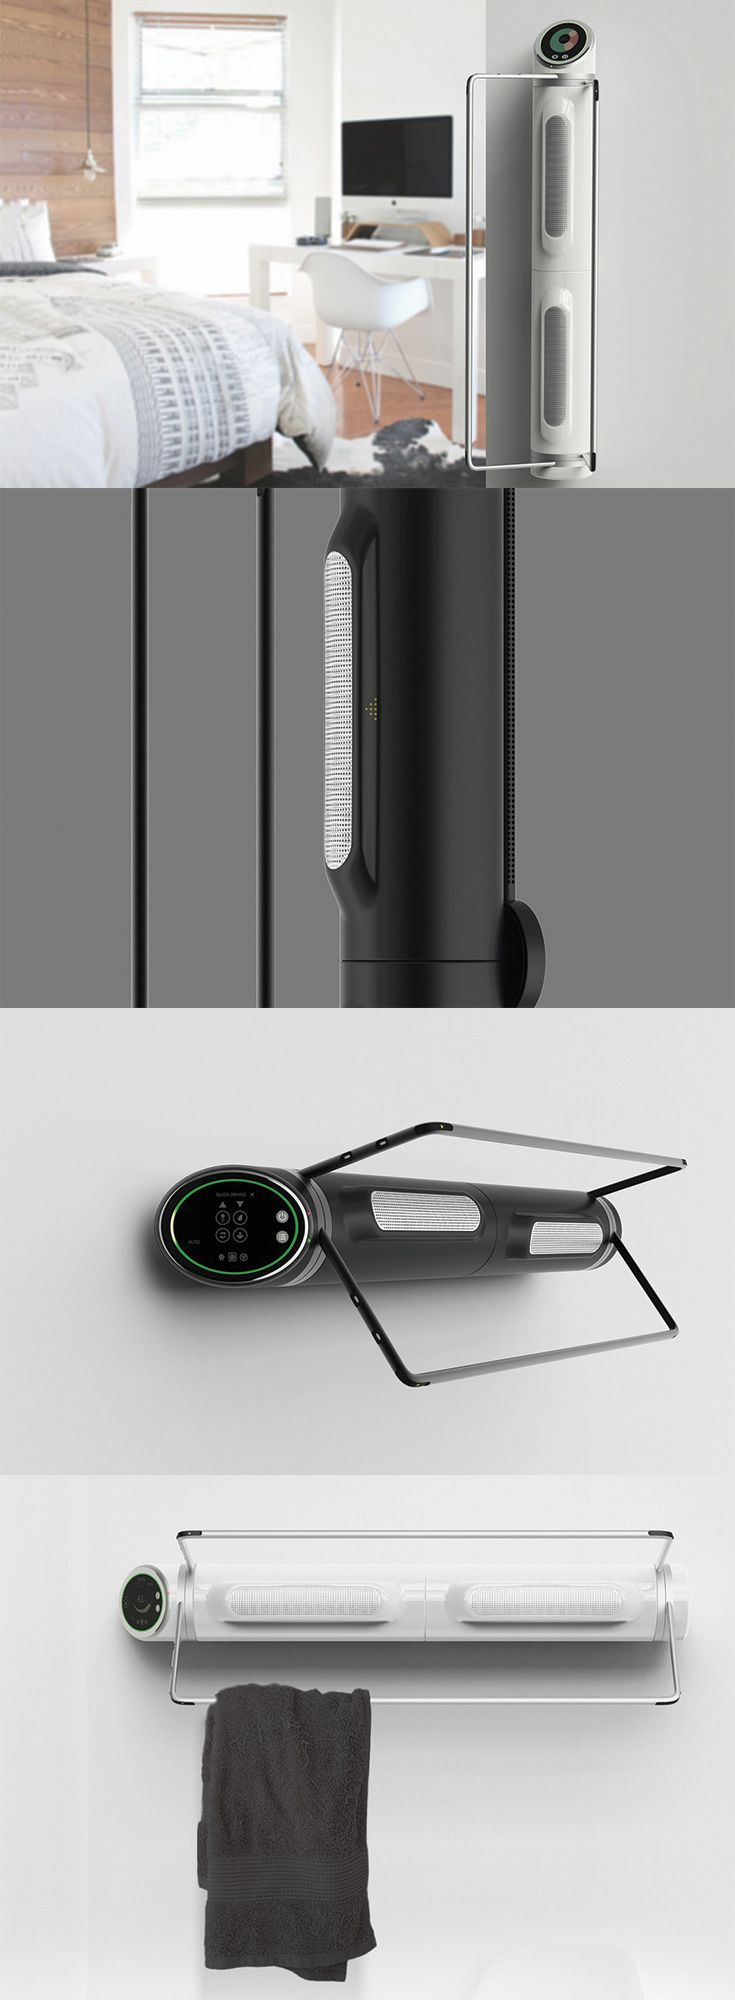 'The Rota' is a dehumidifier that can be used in two different ways, its not just a household appliance to make a pleasant climate but it comes with swiveling racks to hang and quick dry clothes... READ MORE at Yanko Design !